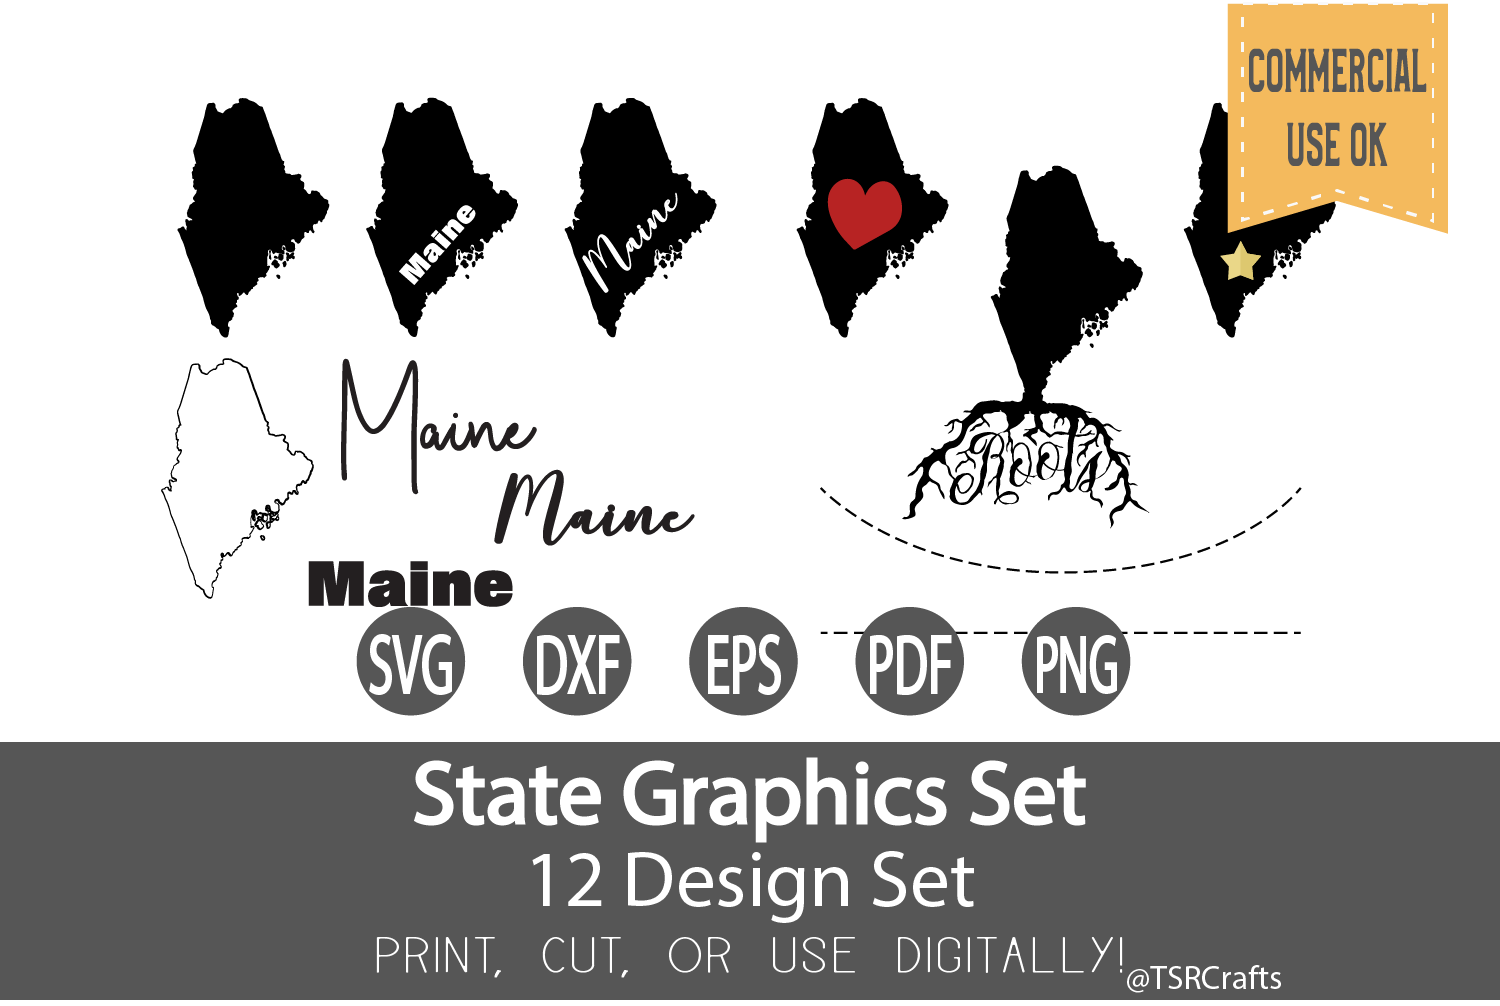 Maine State Graphics Set - Clip Art and Digital Cut fil example image 1